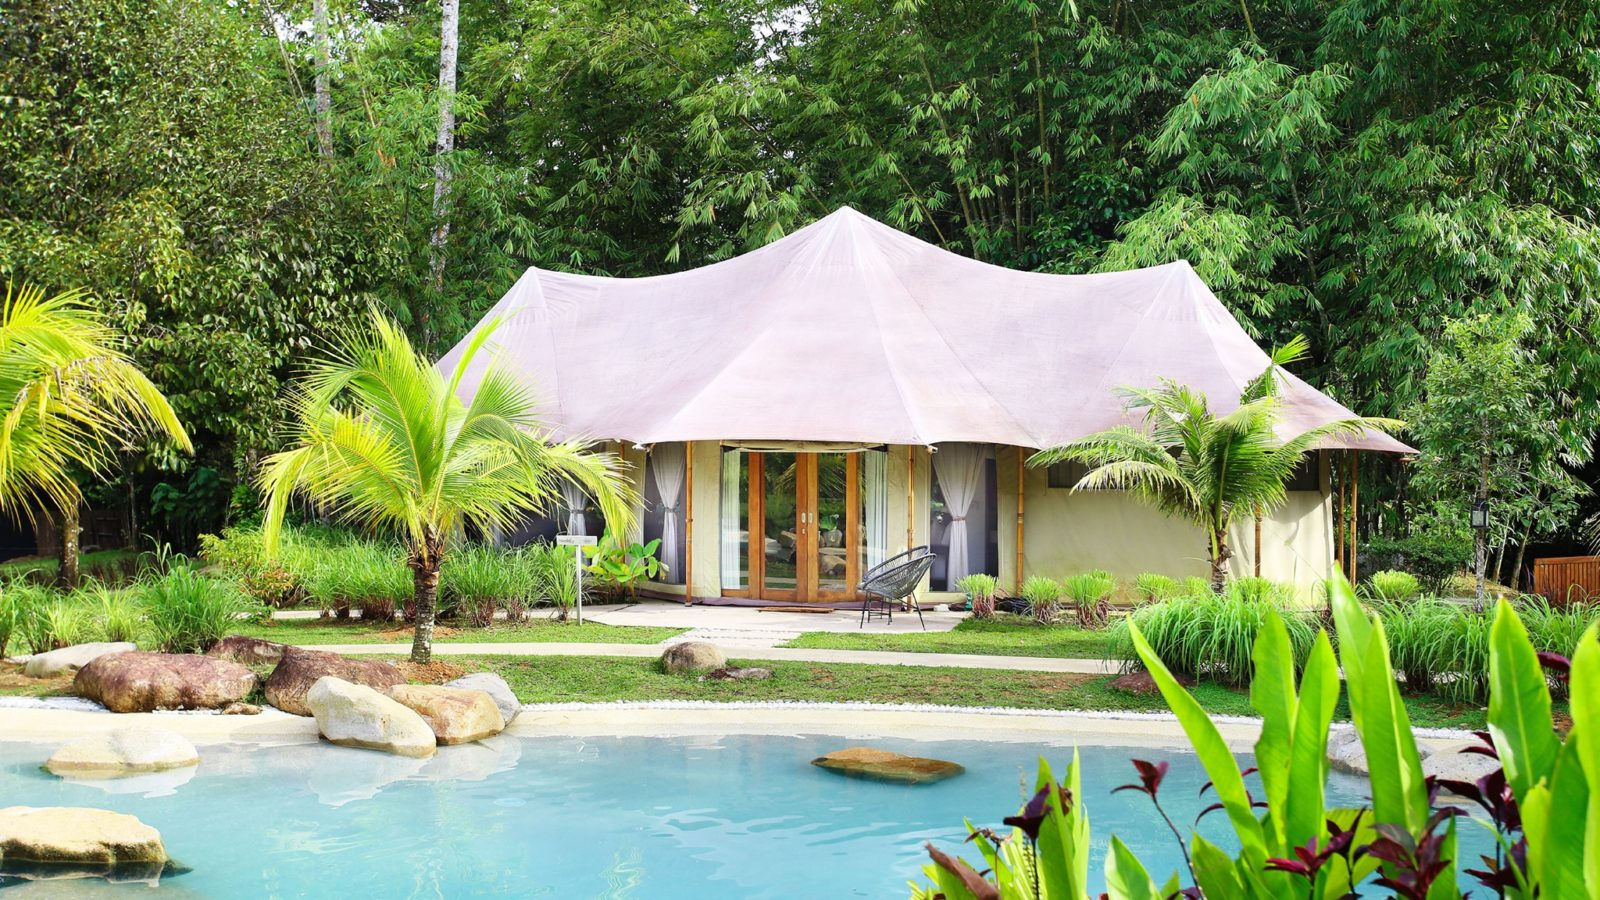 Glamping sites in Malaysia for a break amidst nature